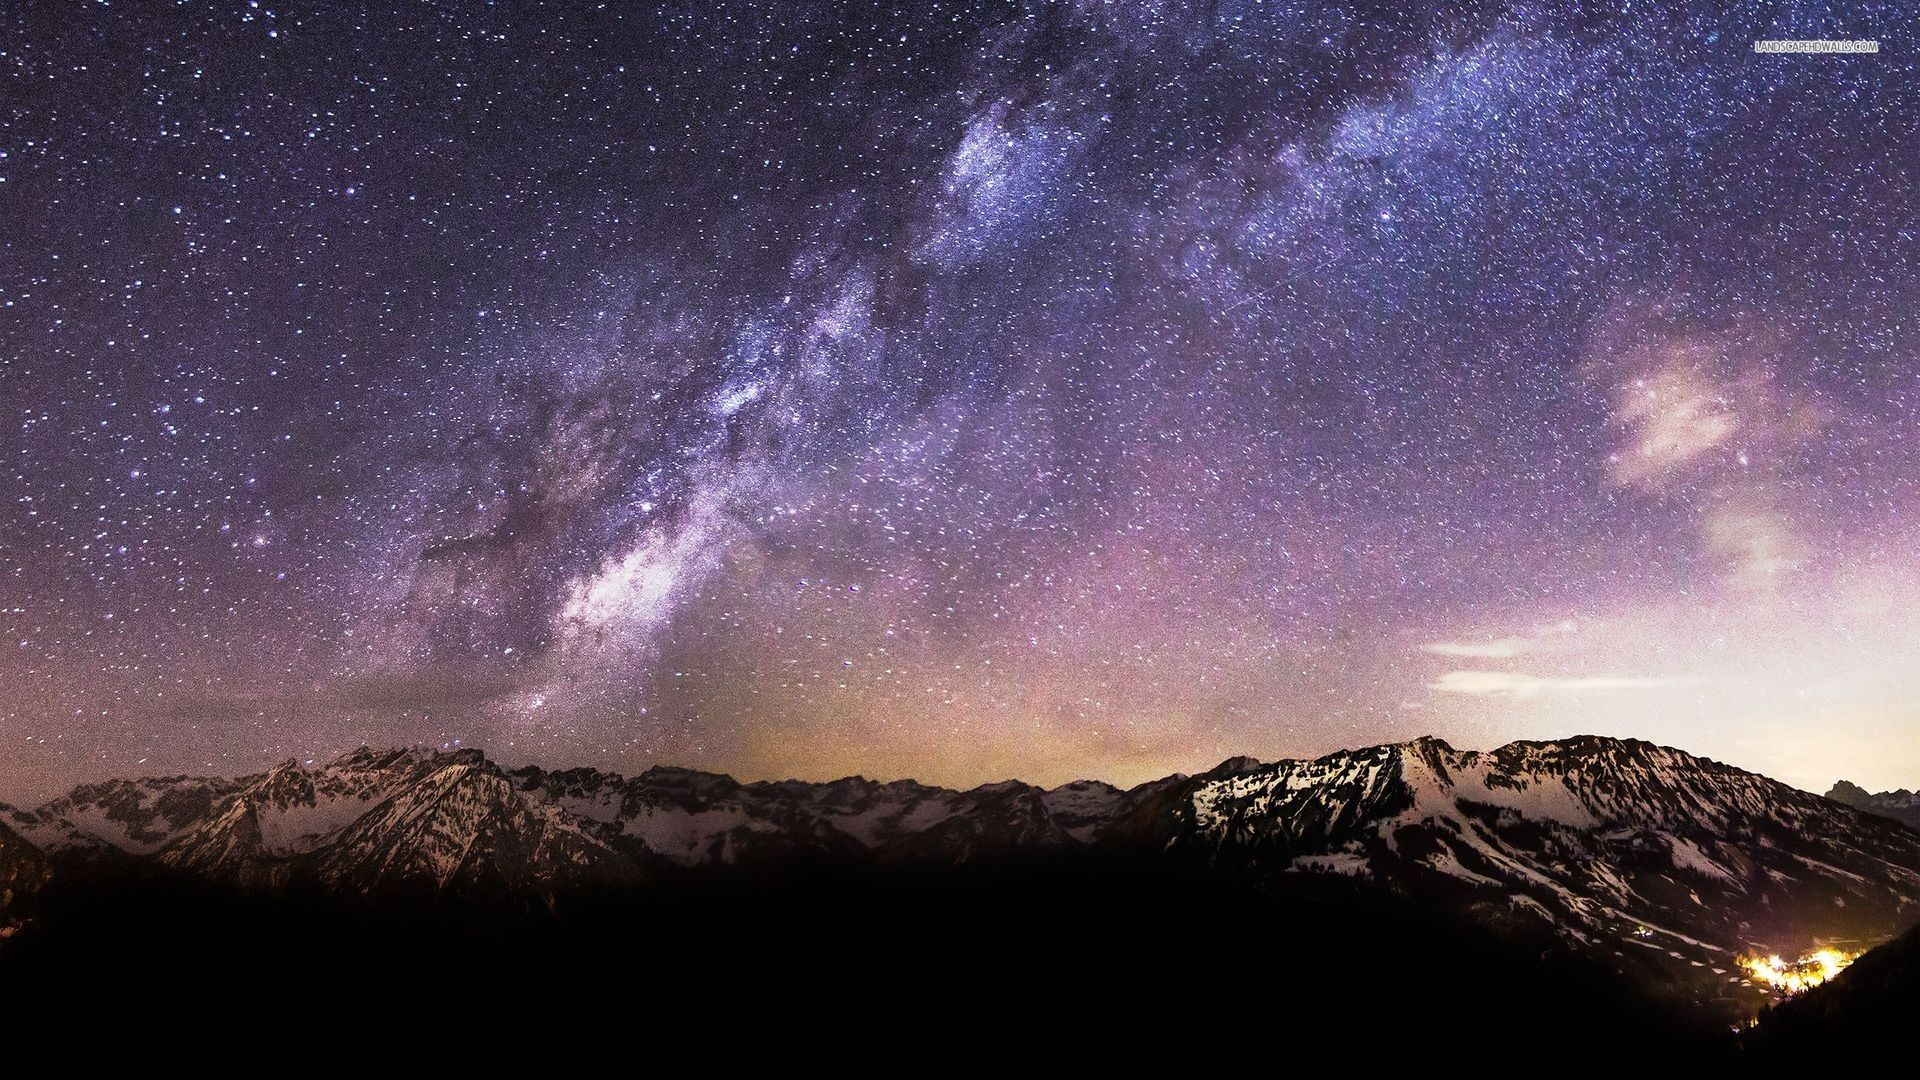 1920x1080 Milky Way Wallpaper 1080p - Wallpaper.